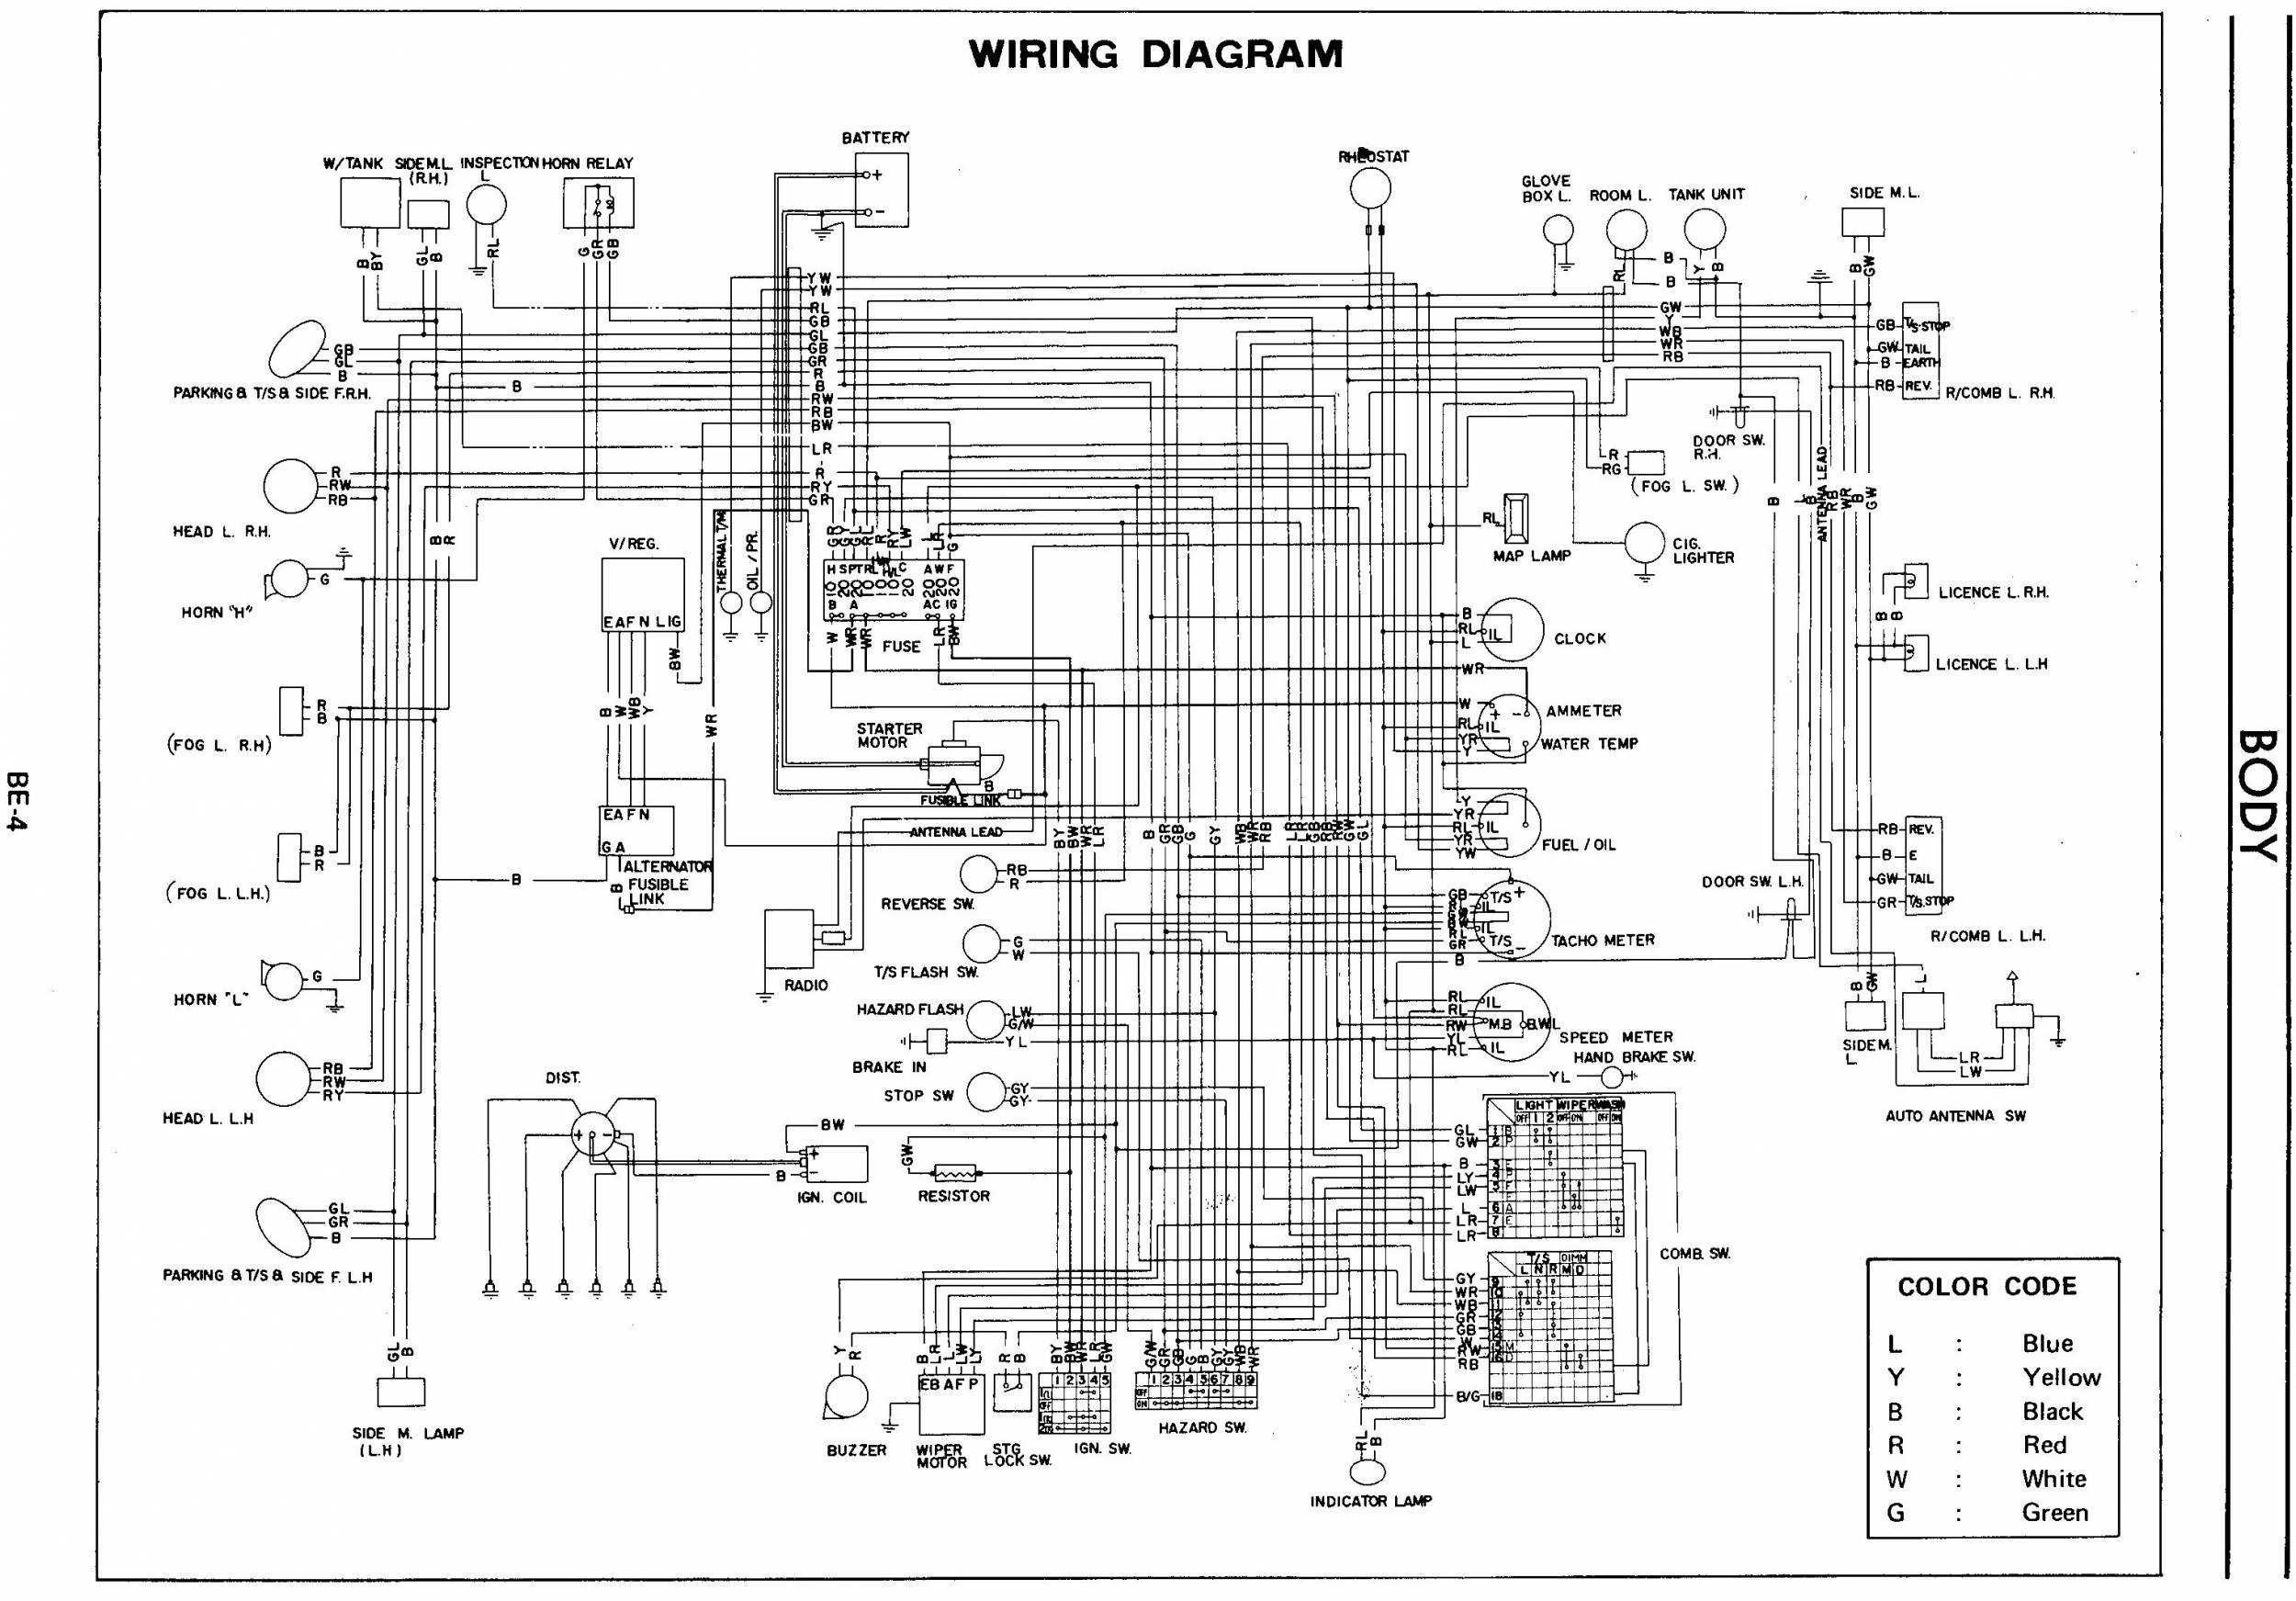 Mercedes Benz Engine Diagram Mercedes Benz Wiring Diagram Altermator Data Wiring Diagrams • Of Mercedes Benz Engine Diagram Mercedes Benz Parts Diagram – Diagram Car Best Car Parts and